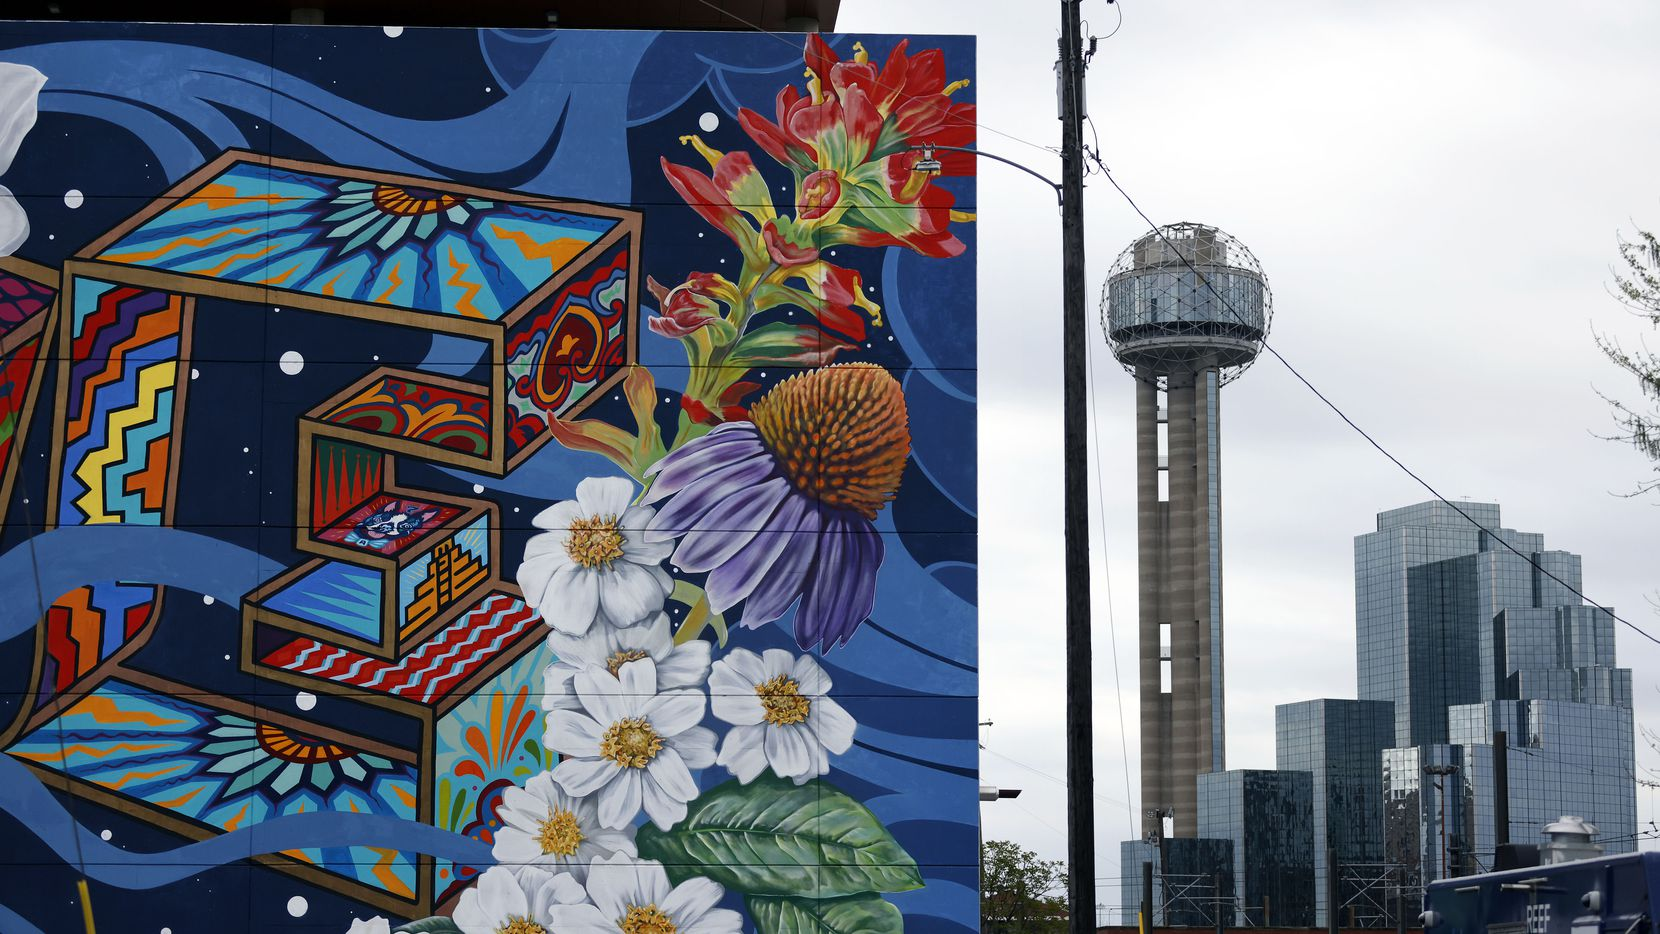 The Power of Love mural is painted on the north side of the Luminary Building in downtown Dallas' West End.